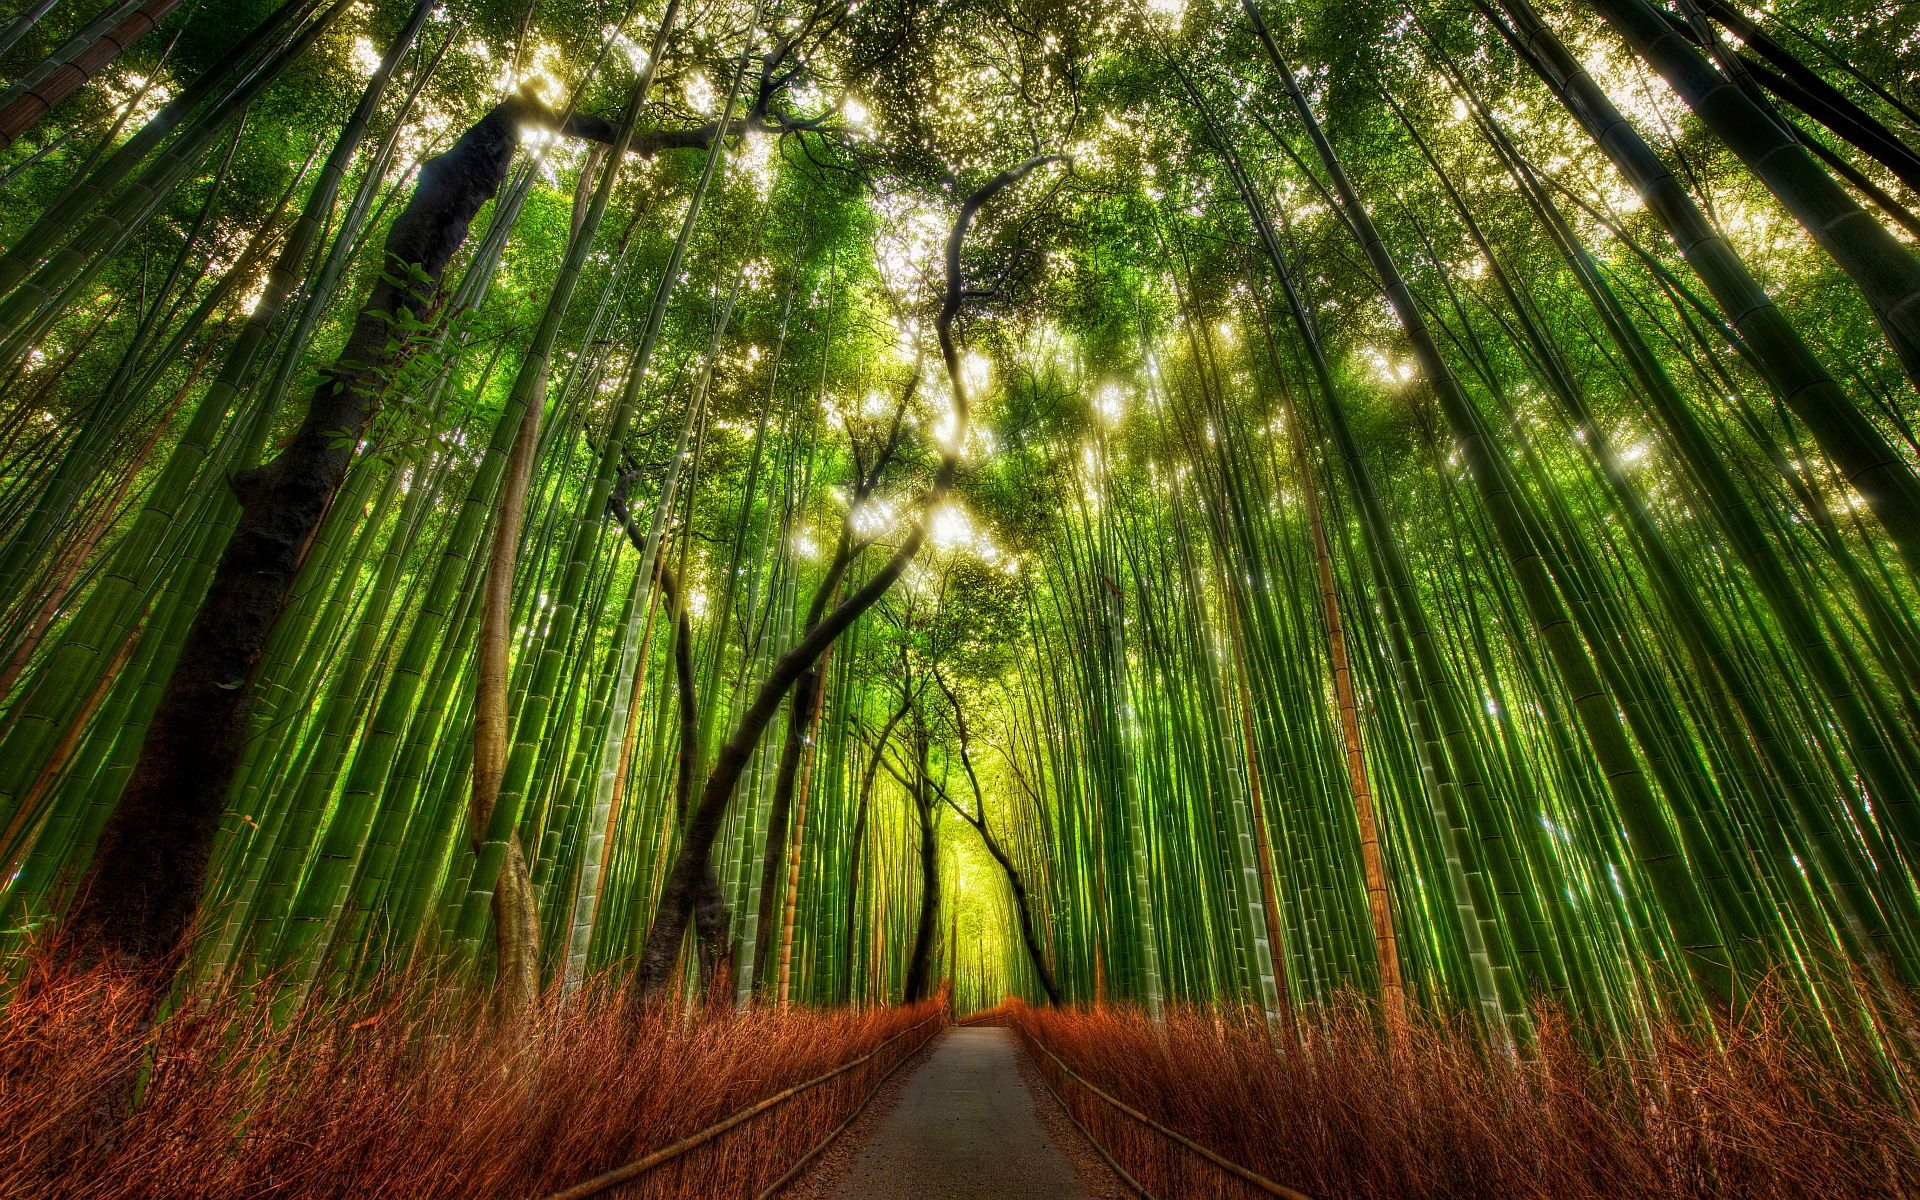 7036219-bamboo-forest-road.jpg